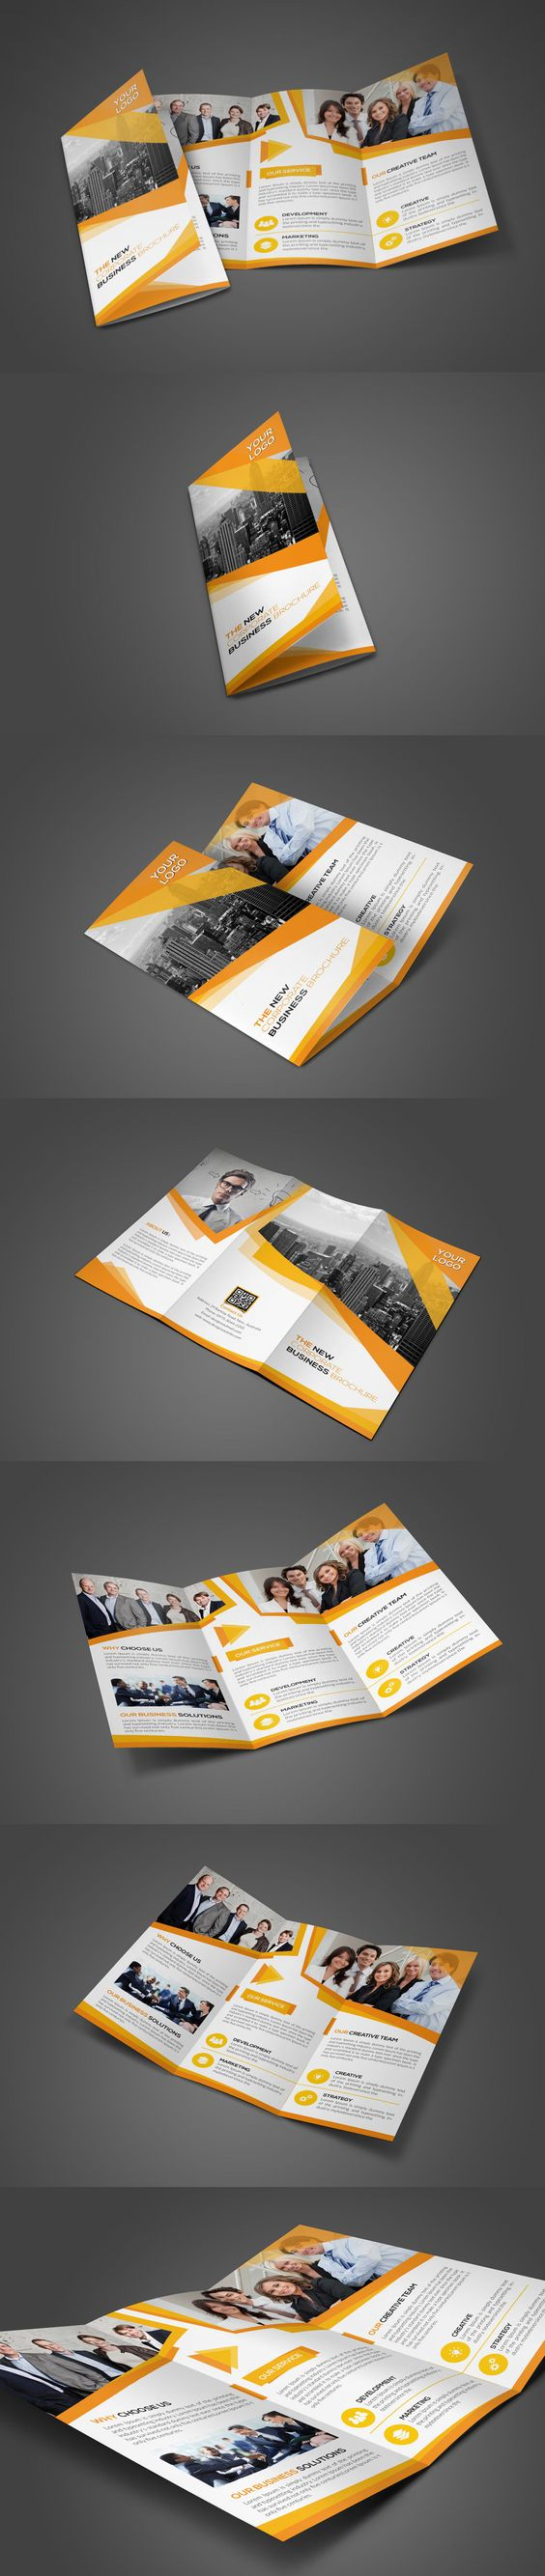 download corporate trifold brochure graphic templates by subscribe to envato elements for unlimited graphic templates downloads for a single monthly fee